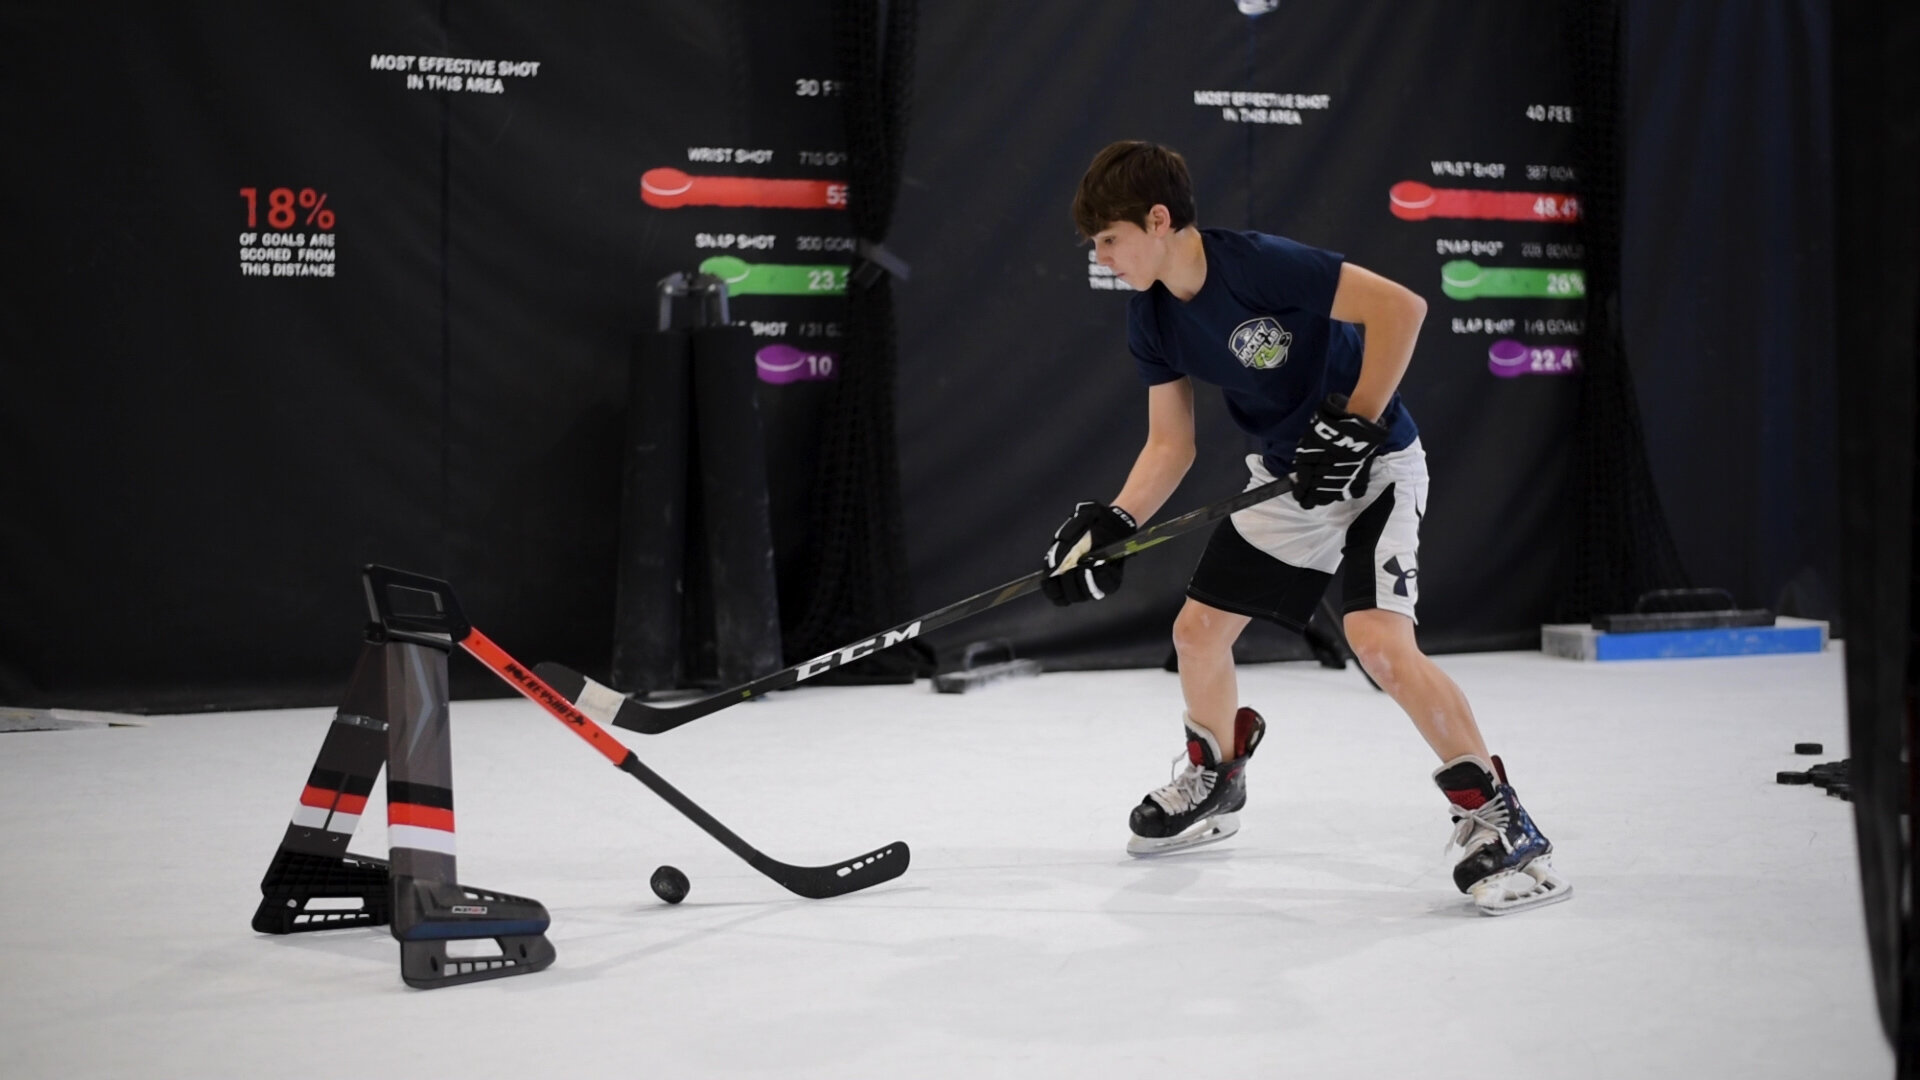 4 Hockey Training Aids That Will Maximize Your Game